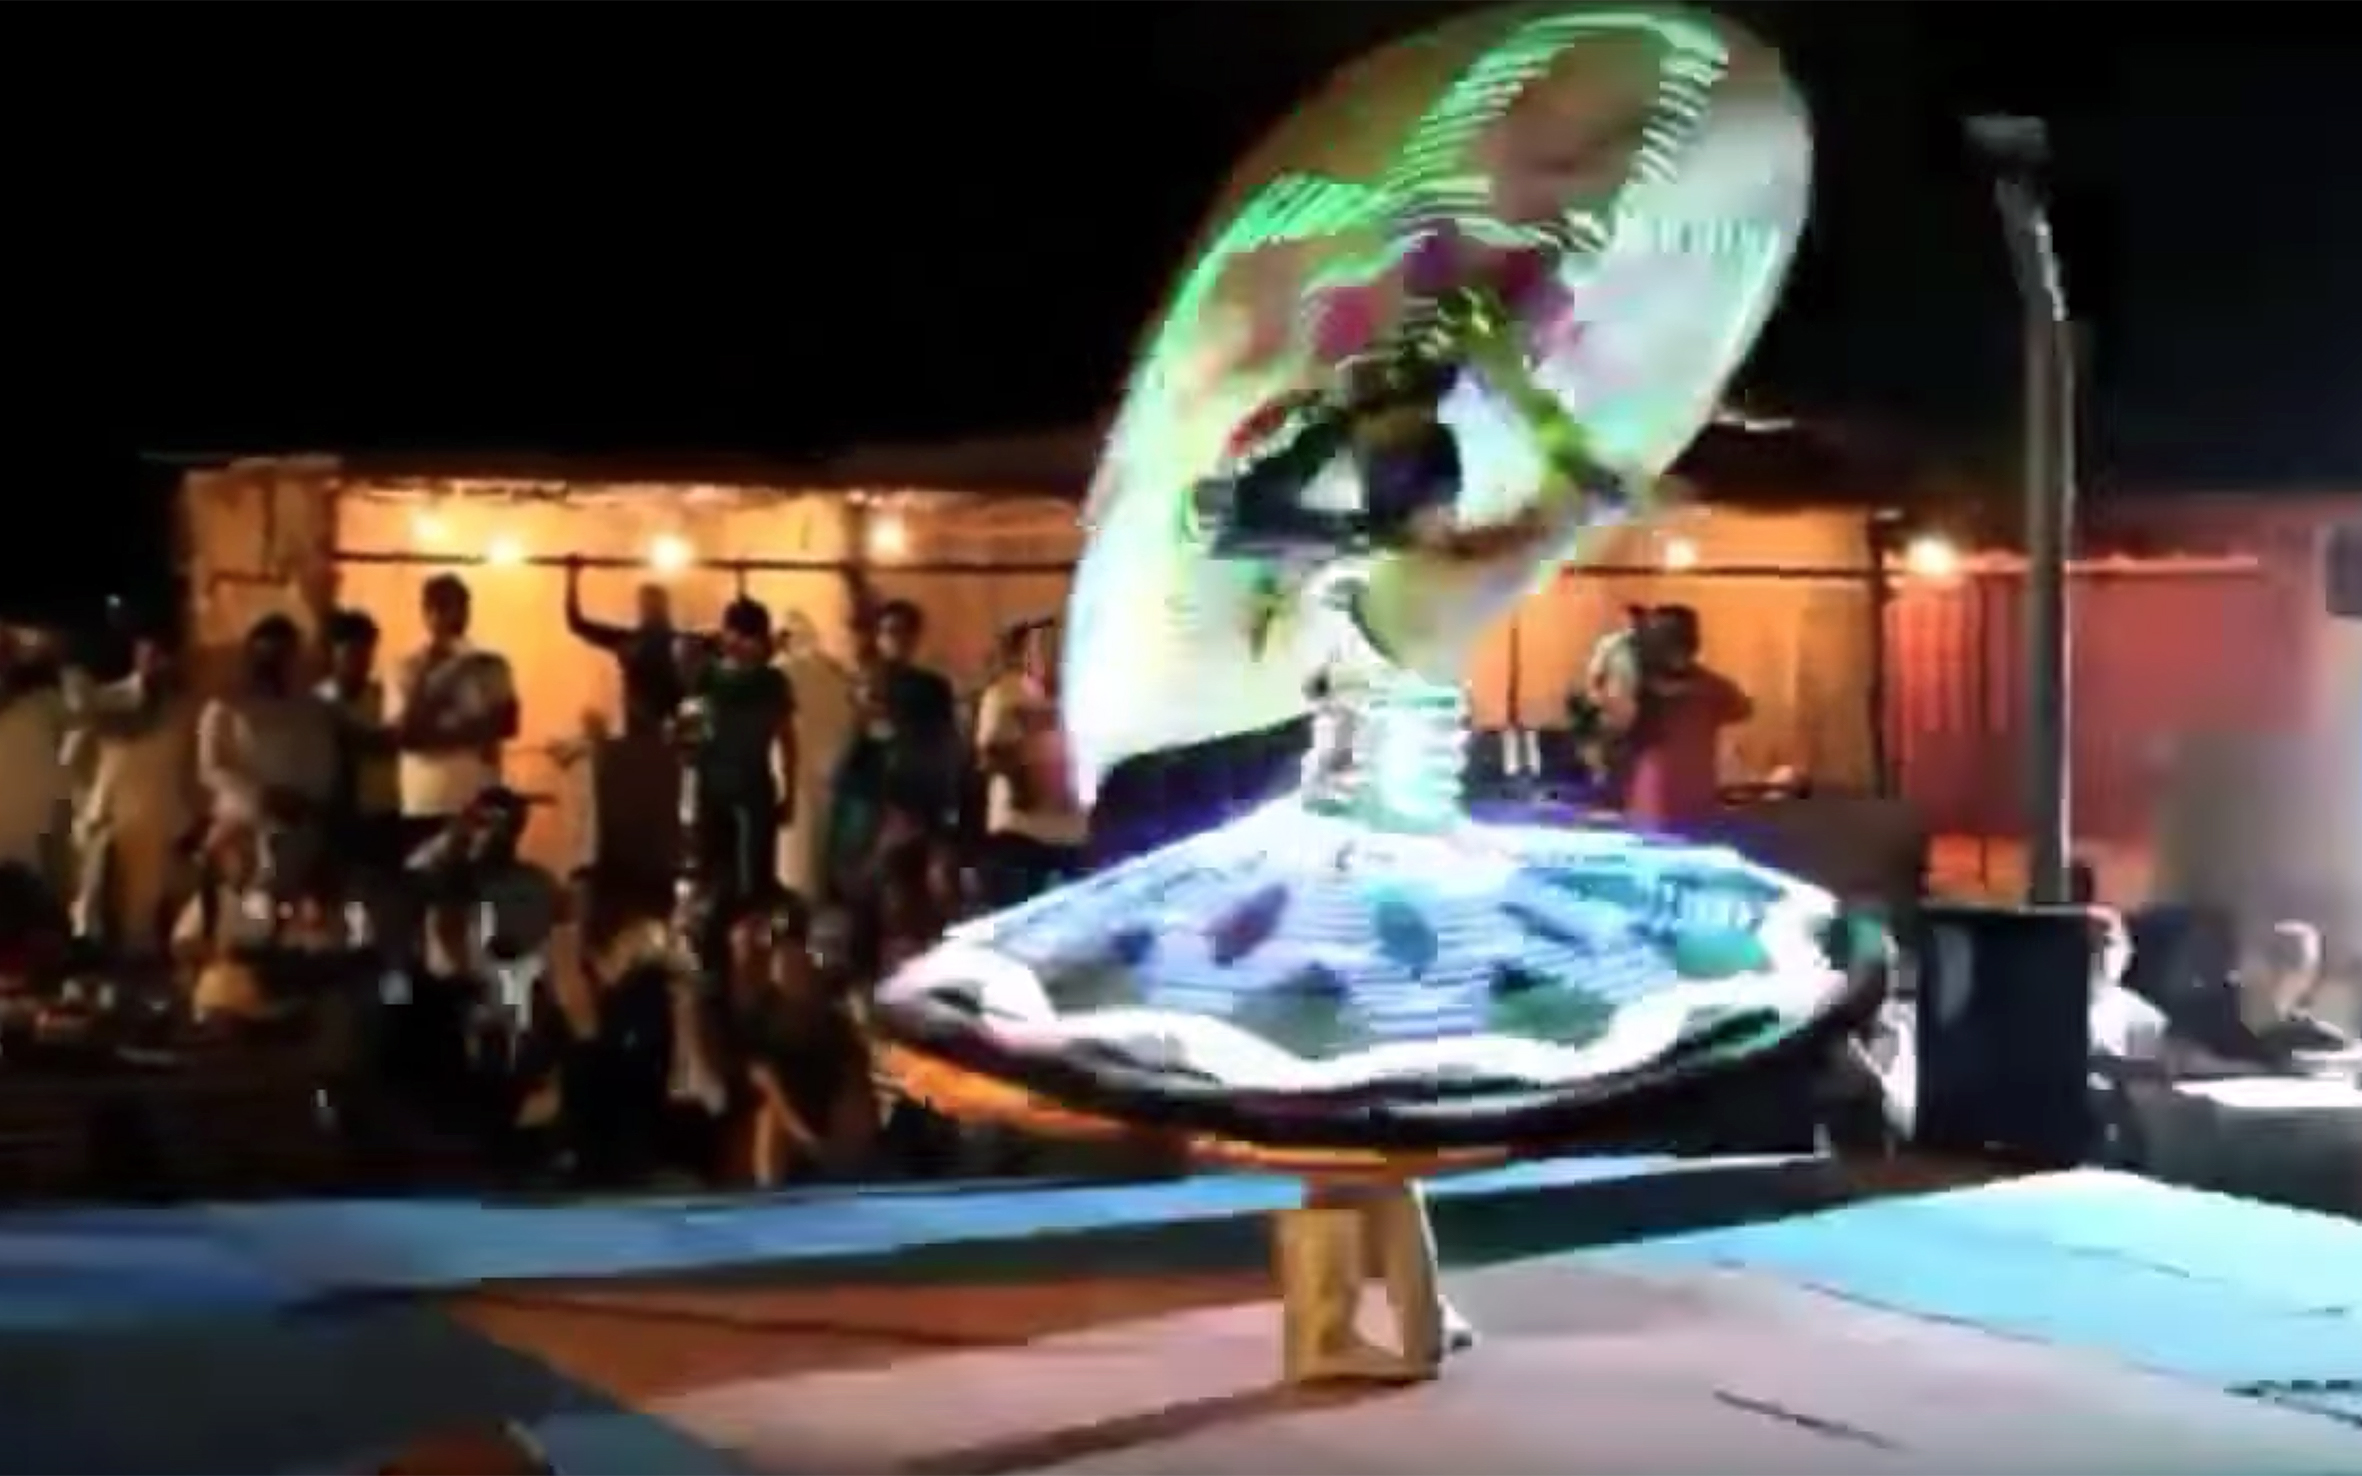 863.Tanoura / Egypt - Tanoura is an Egyptian dance that has roots in Sufi dances. It merged with Folk and Baladi elements to create own style. There are many styles of whirling Dervish dances but Tanoura has its own particular style that ties it to Folklore dancing coming from Egypt.